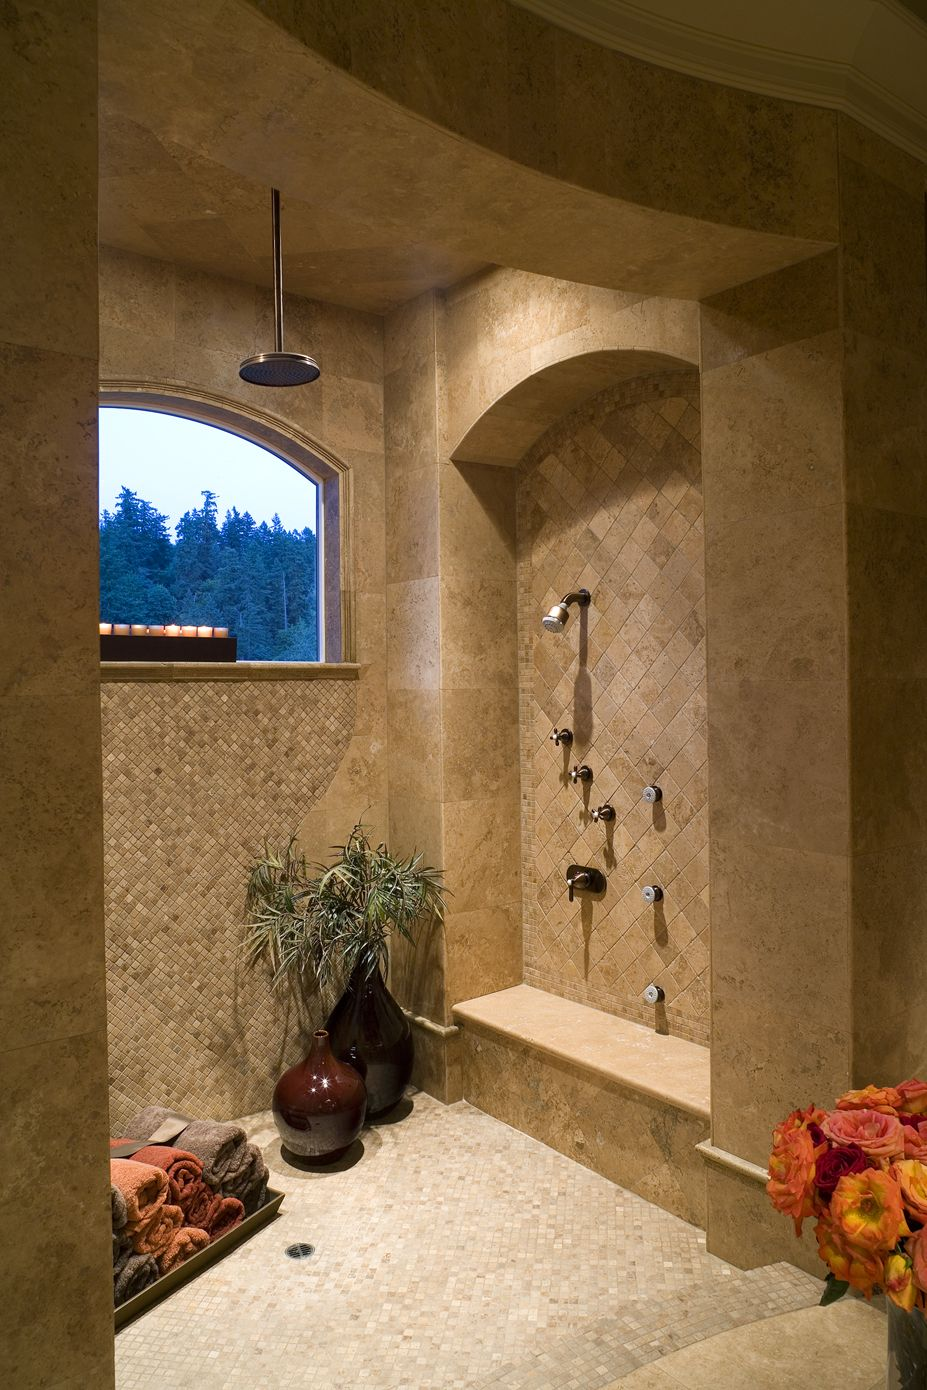 2020 Bathroom Remodel Cost Average Cost Of Bathroom Remodel Renovations Mediterranean Bathroom Mediterranean Bathroom Design Ideas Bathroom Remodel Cost